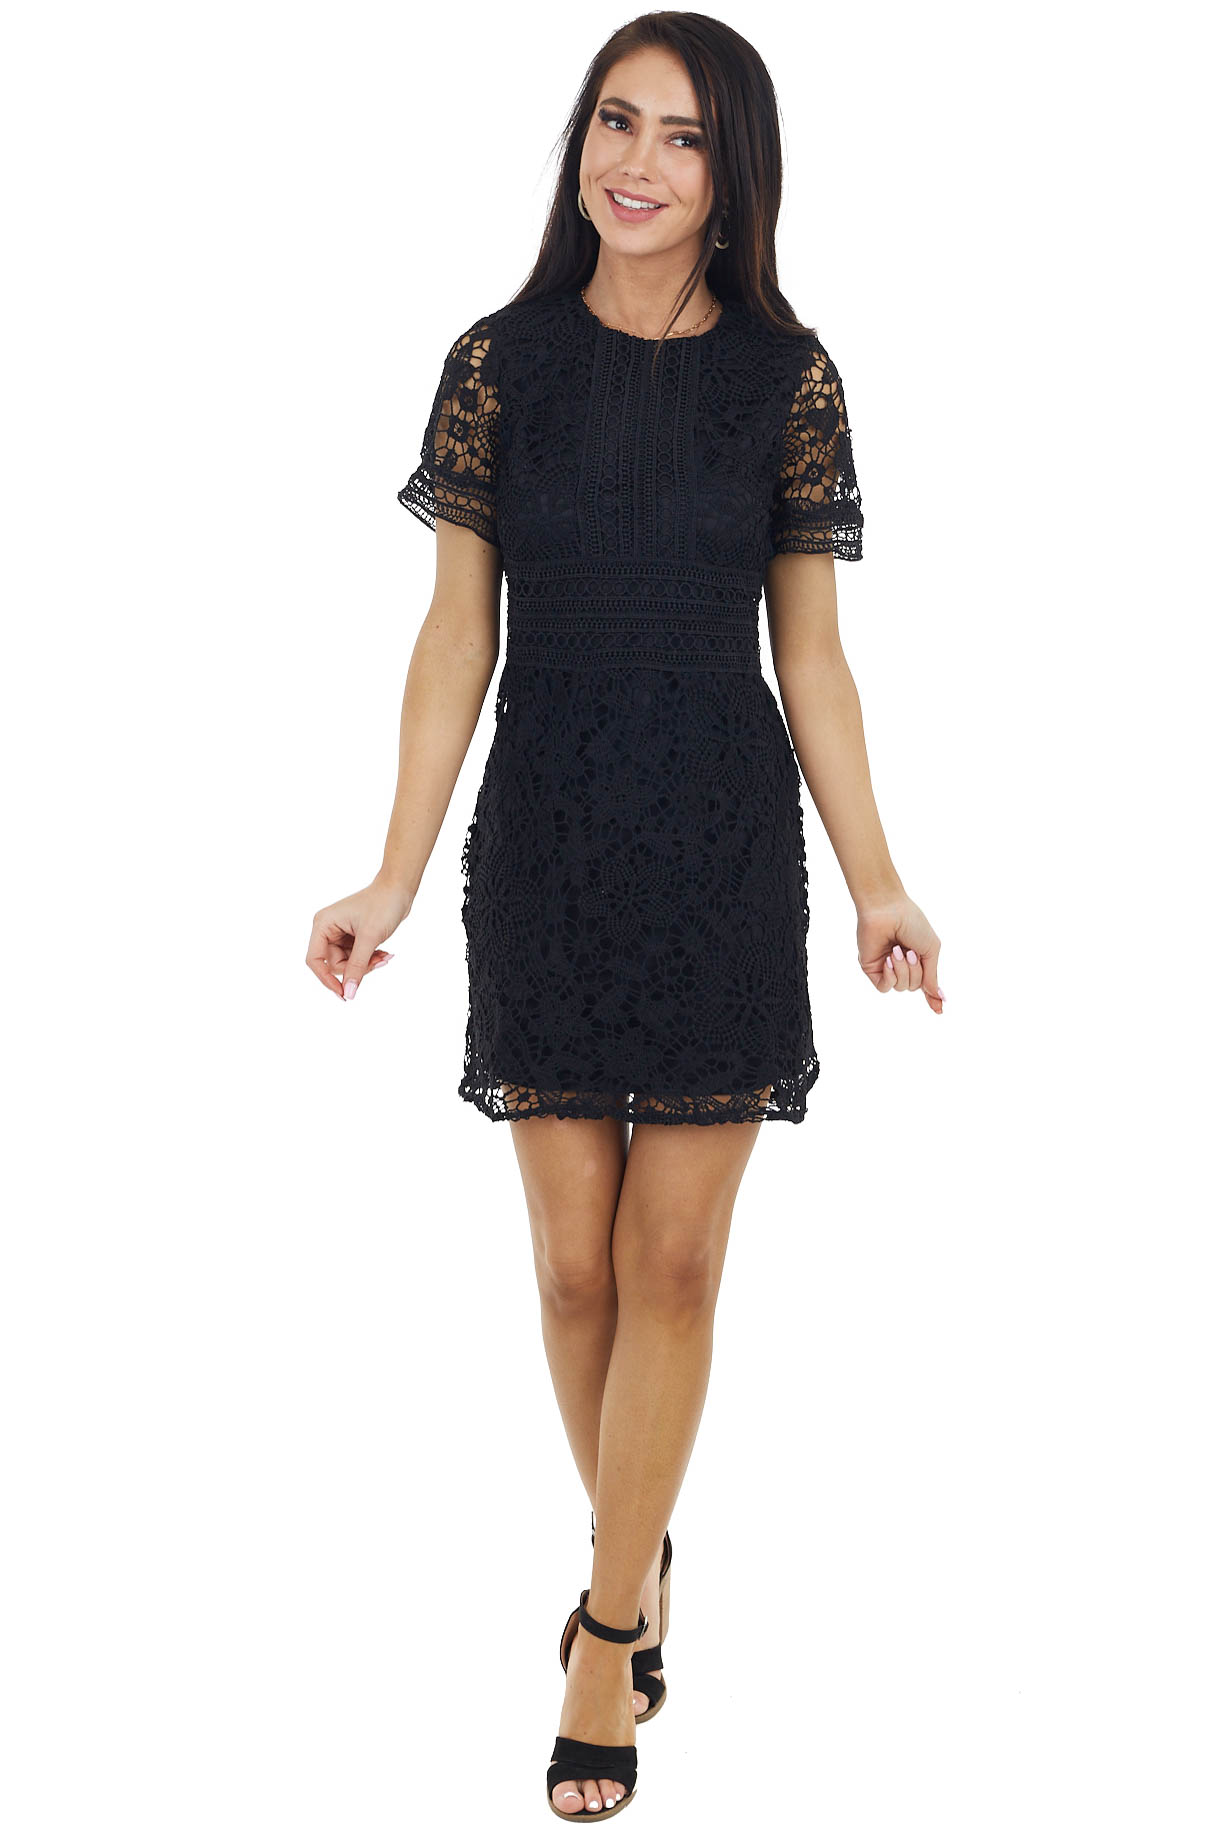 Black Short Sleeve Crochet Mini Dress